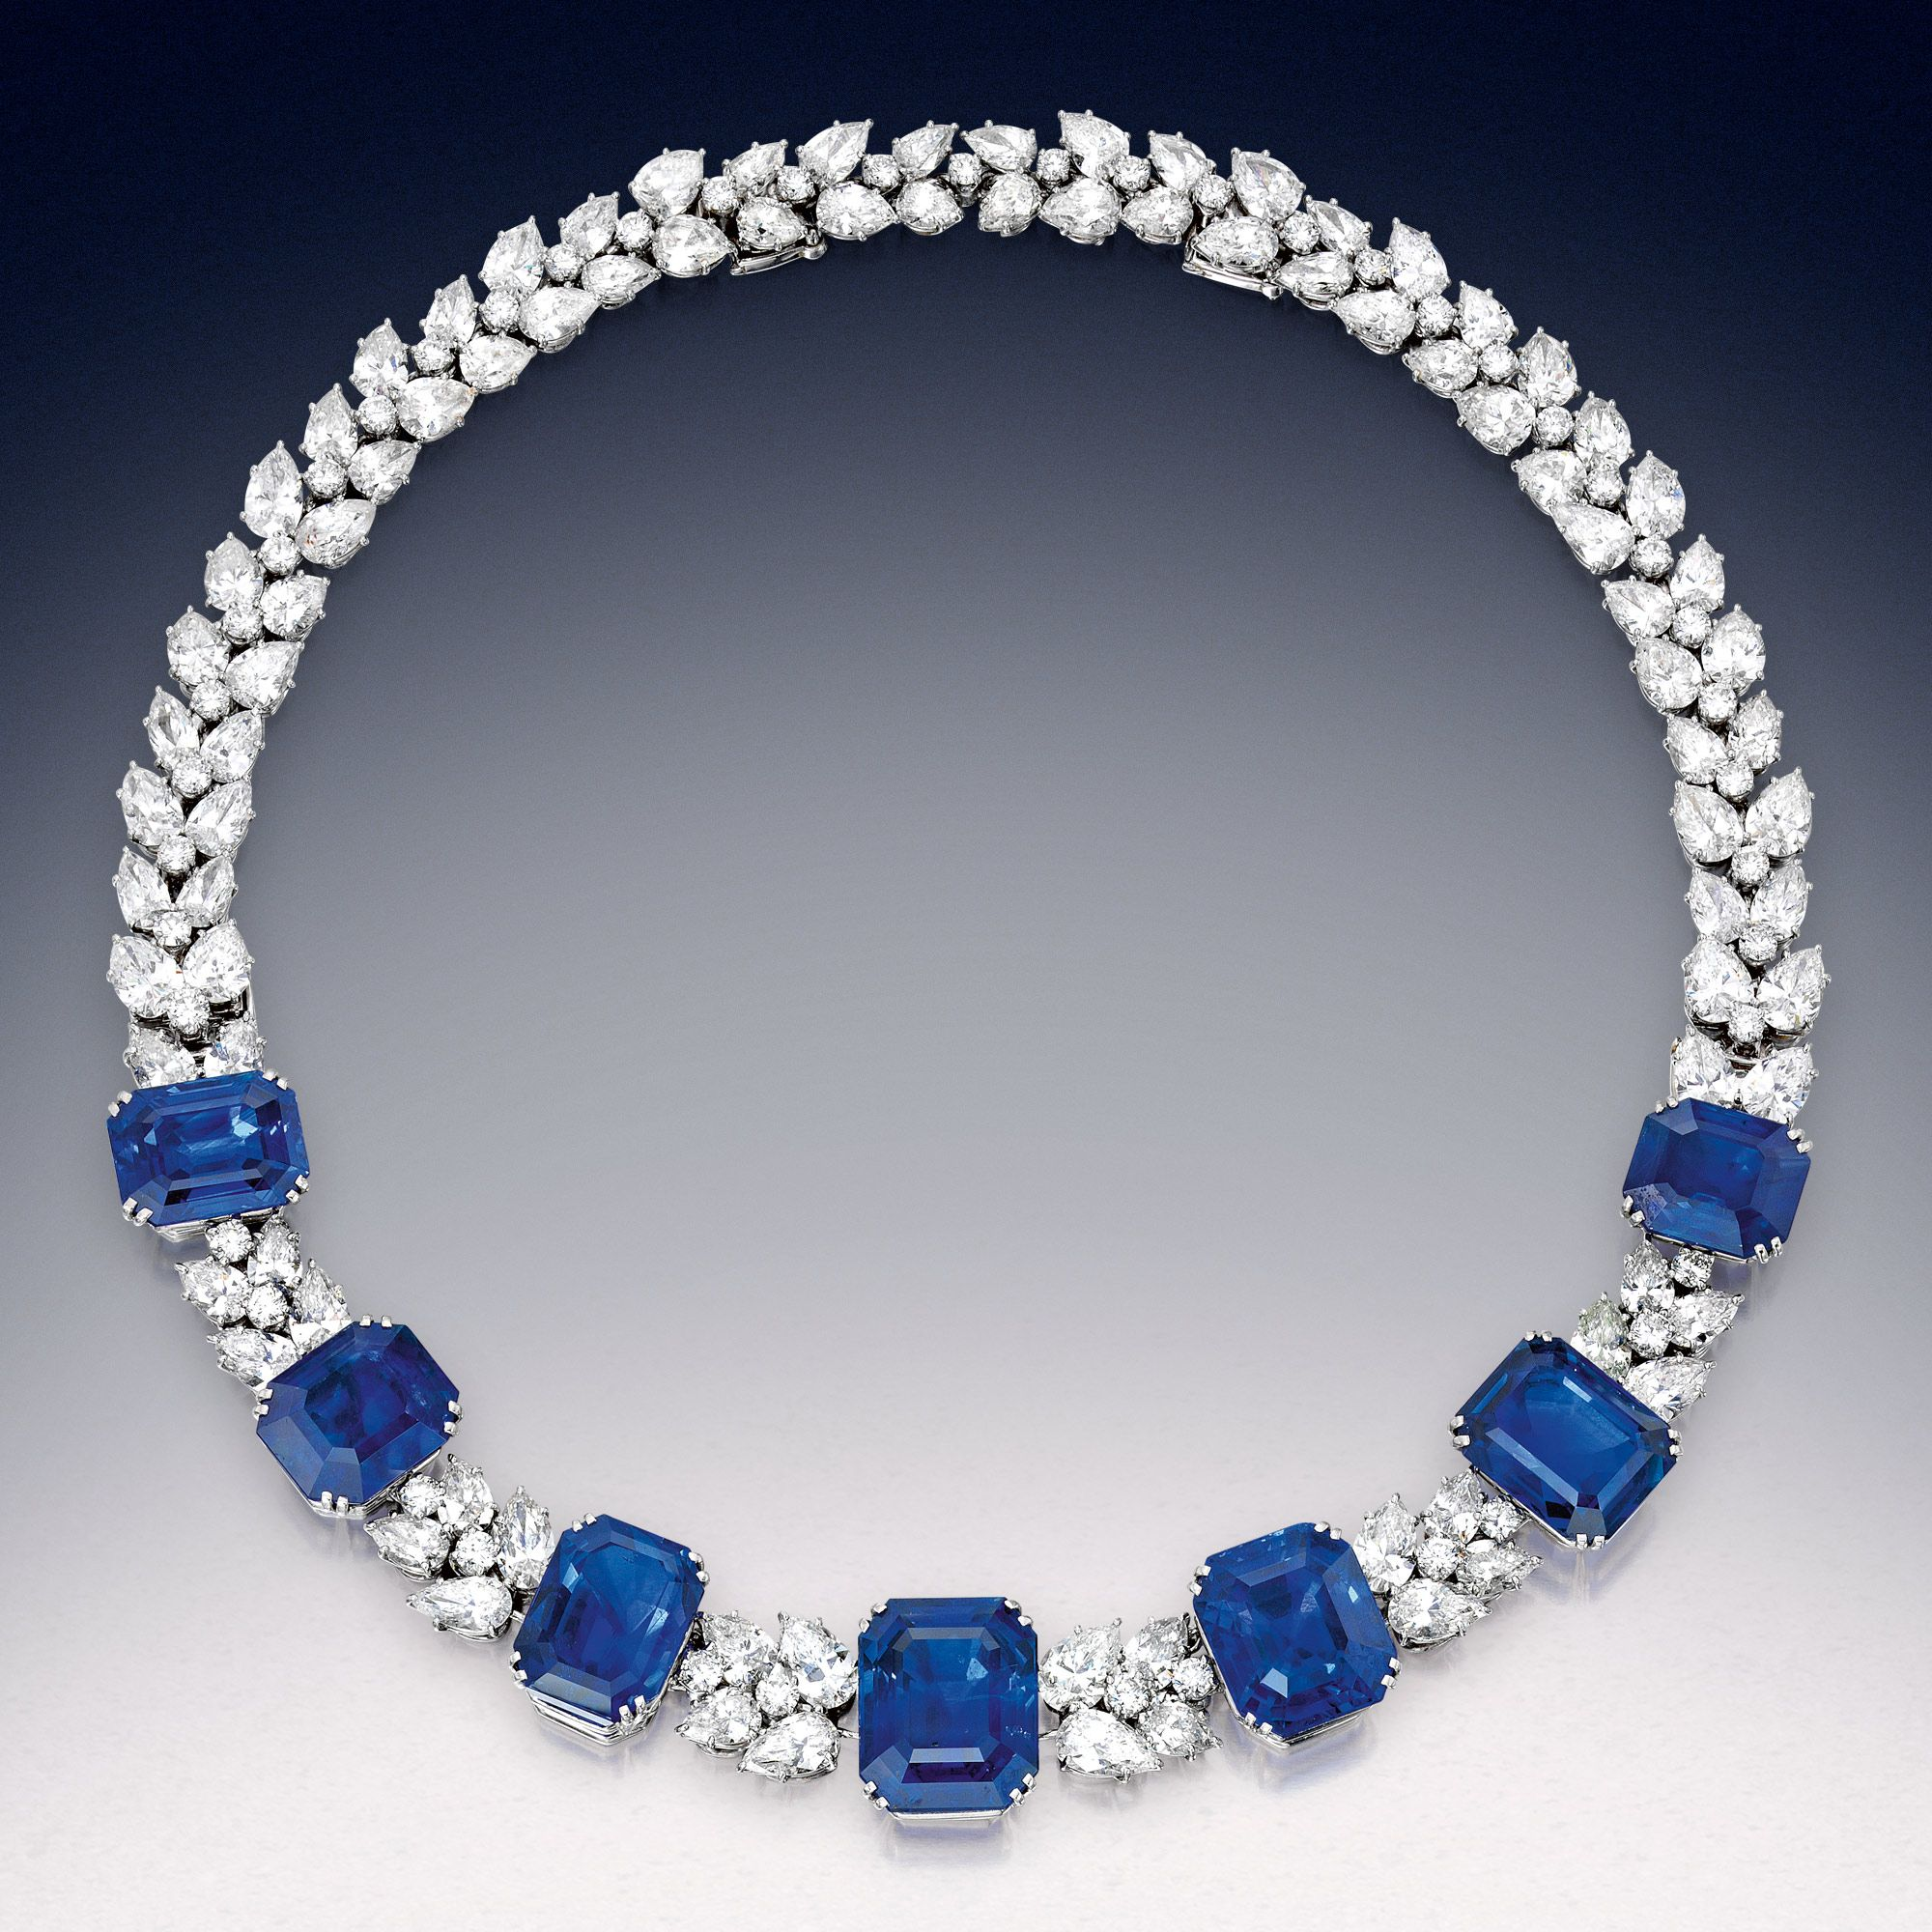 Magnificent Sapphire And Diamond Necklace Bracelet Combination The Sapphires Weighing A Tot With Images Diamond Necklace Simple Jewelry Diamond Necklace Designs